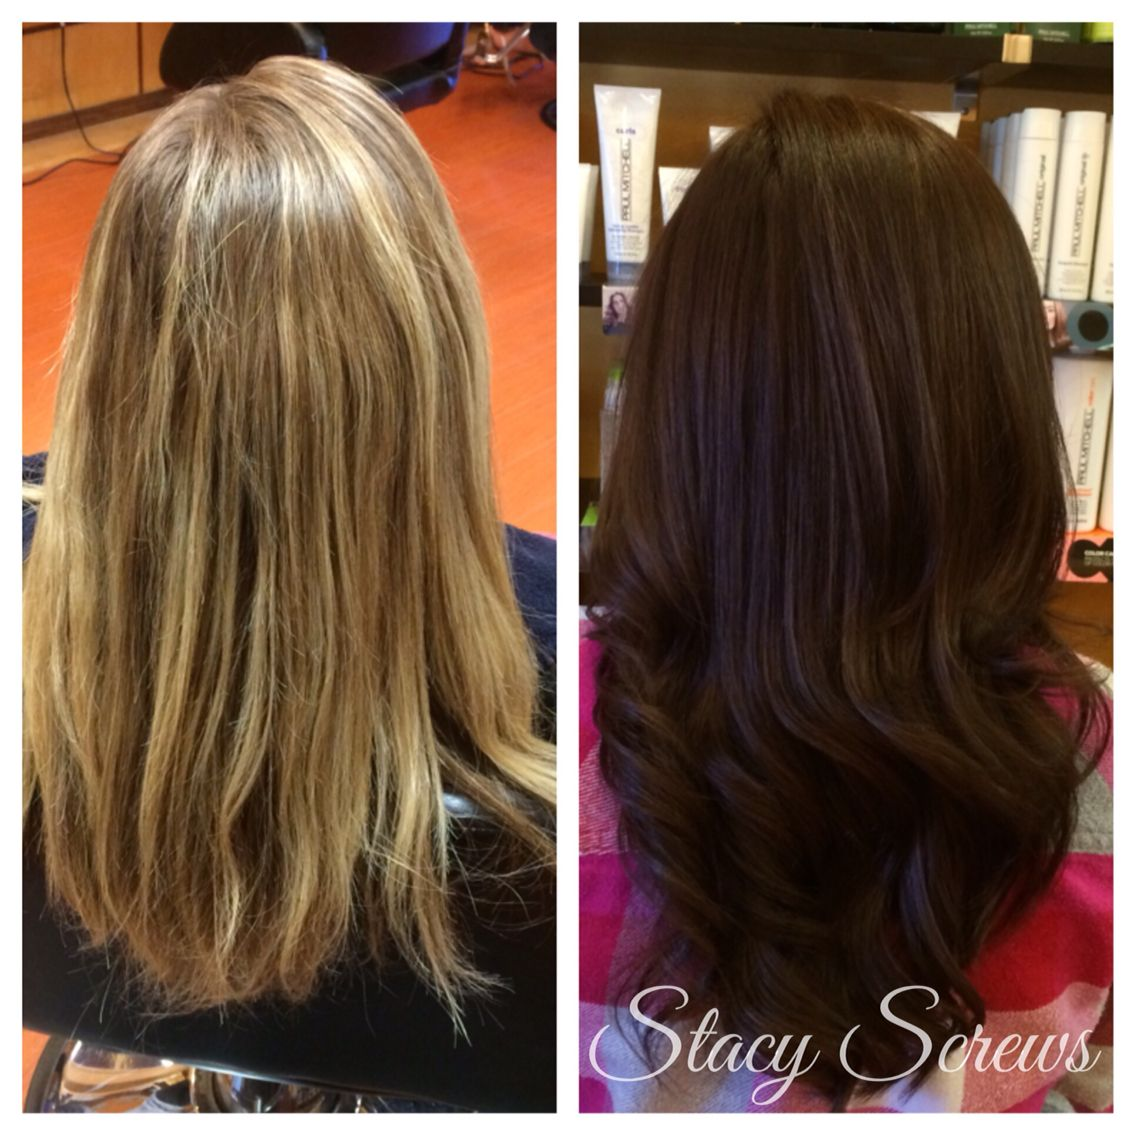 Beautiful transformation for this client rich brown just in time